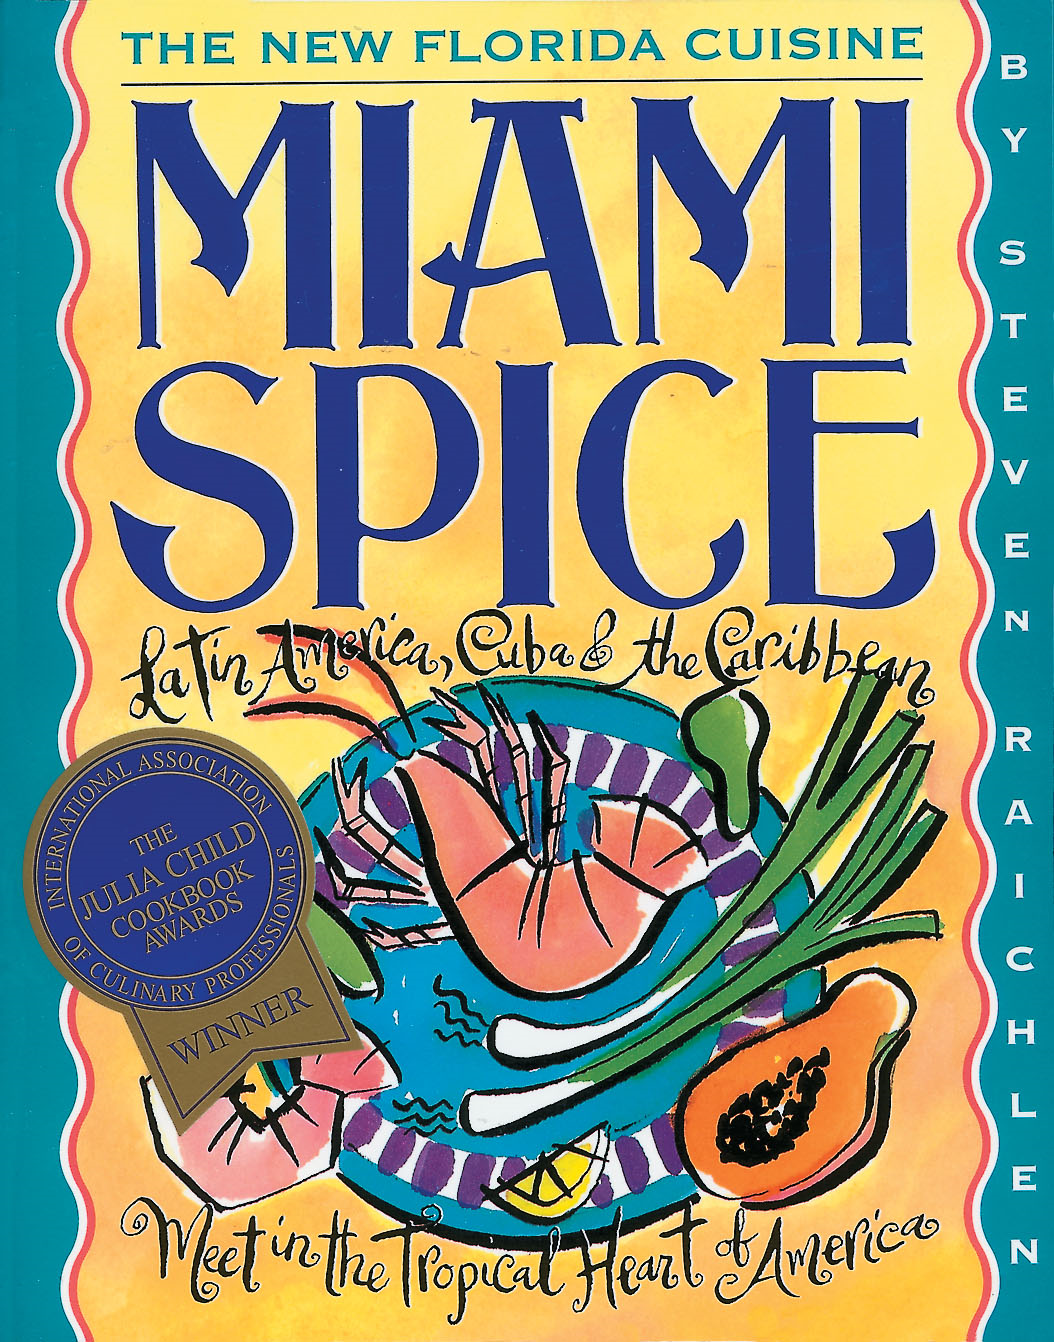 Miami Spice: The New Florida Cuisine